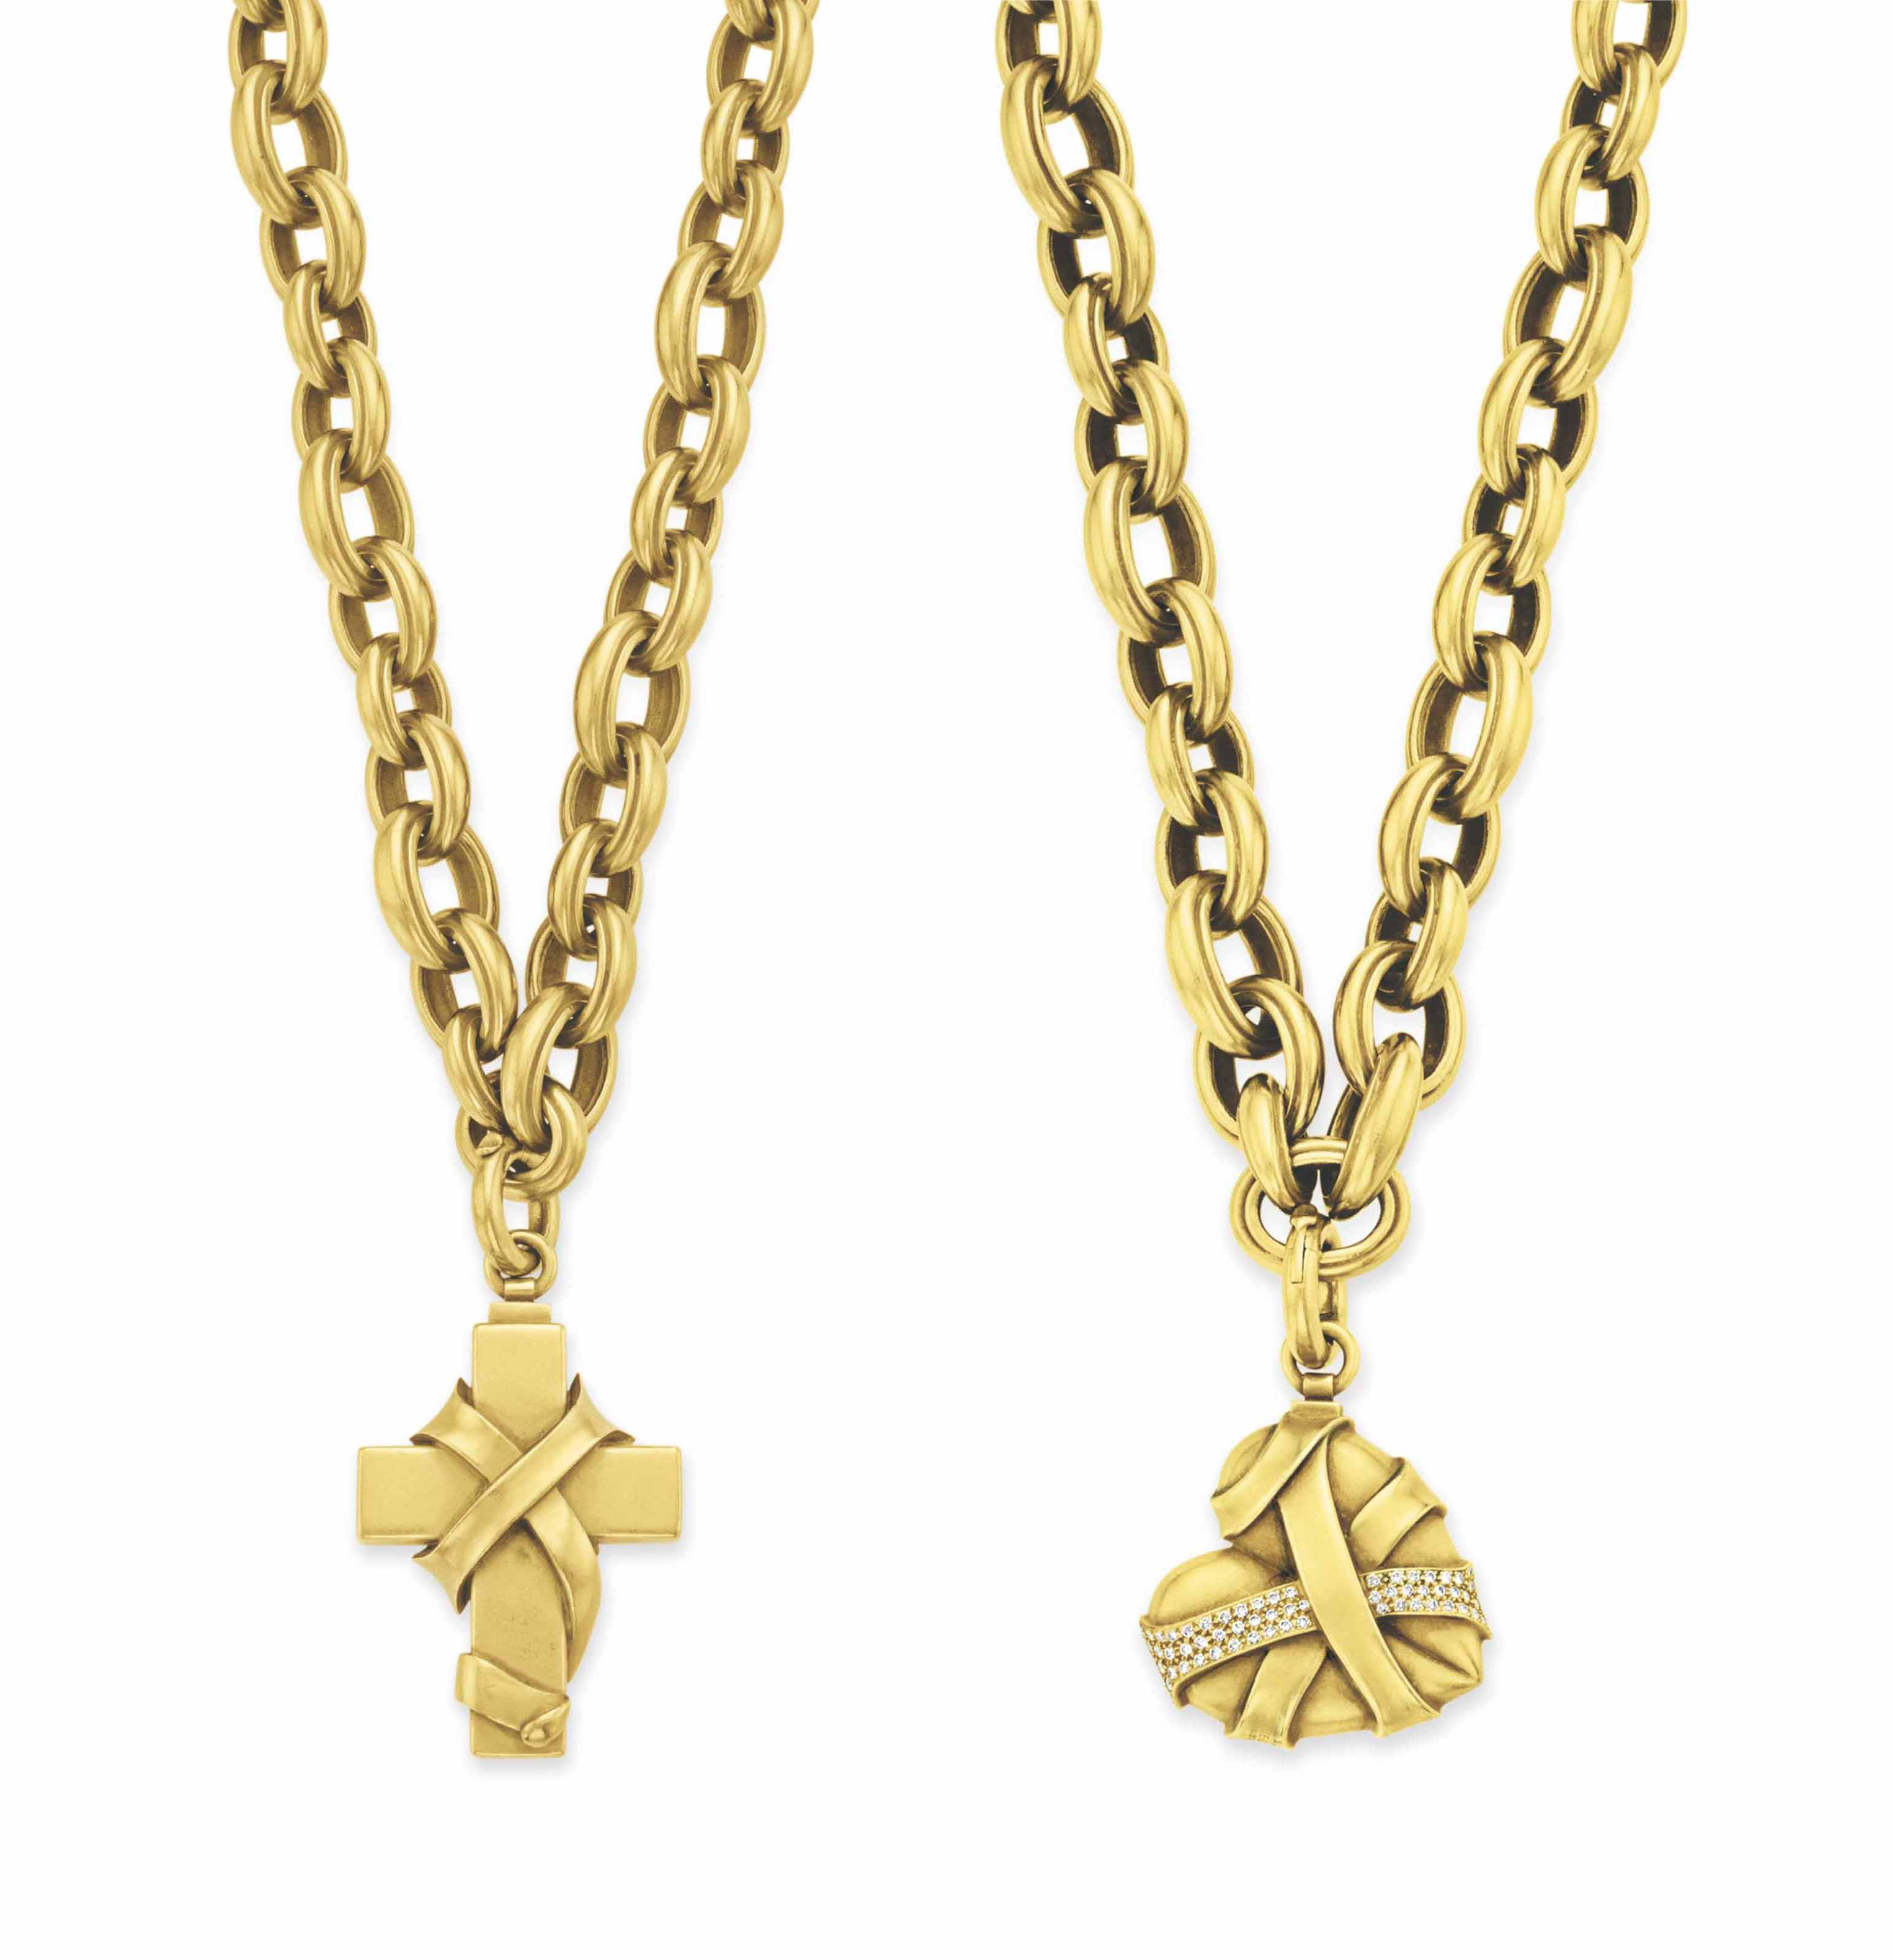 TWO GOLD PENDANT NECKLACES, BY BARRY KIESELSTEIN-CORD